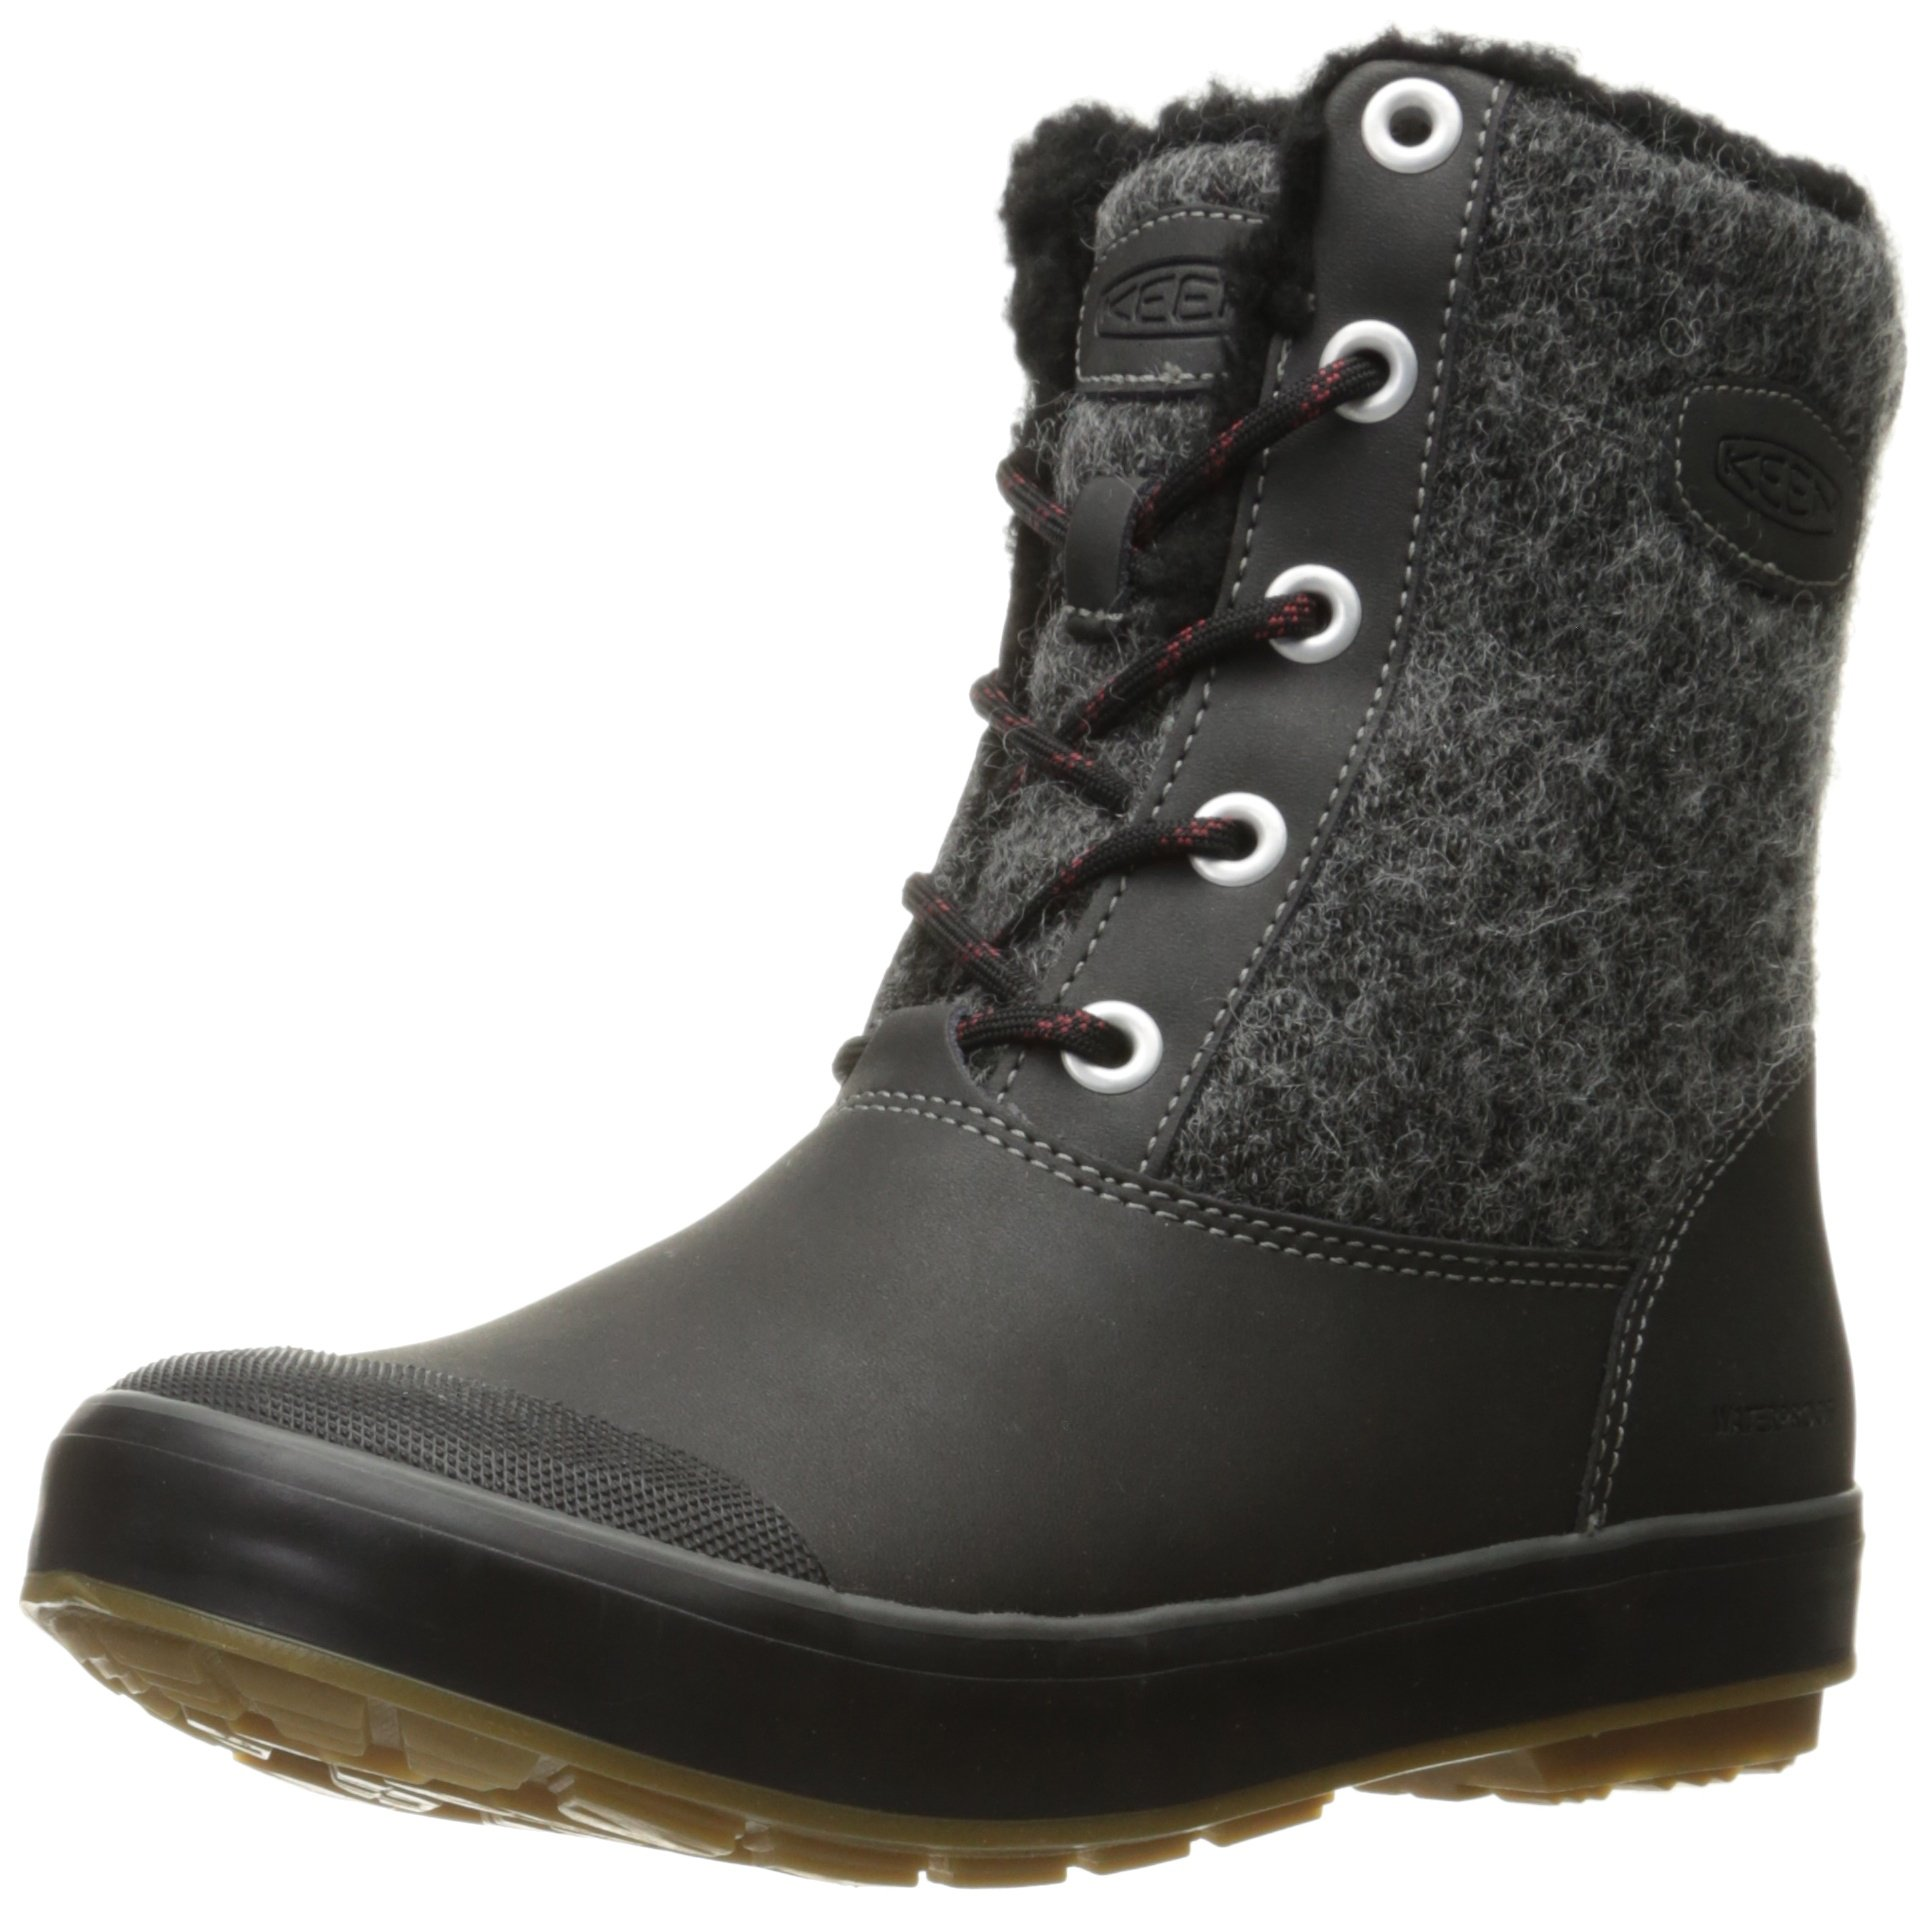 KEEN Women's Elsa Wp-w Snow Boot, Black Wool, 8 M US by KEEN